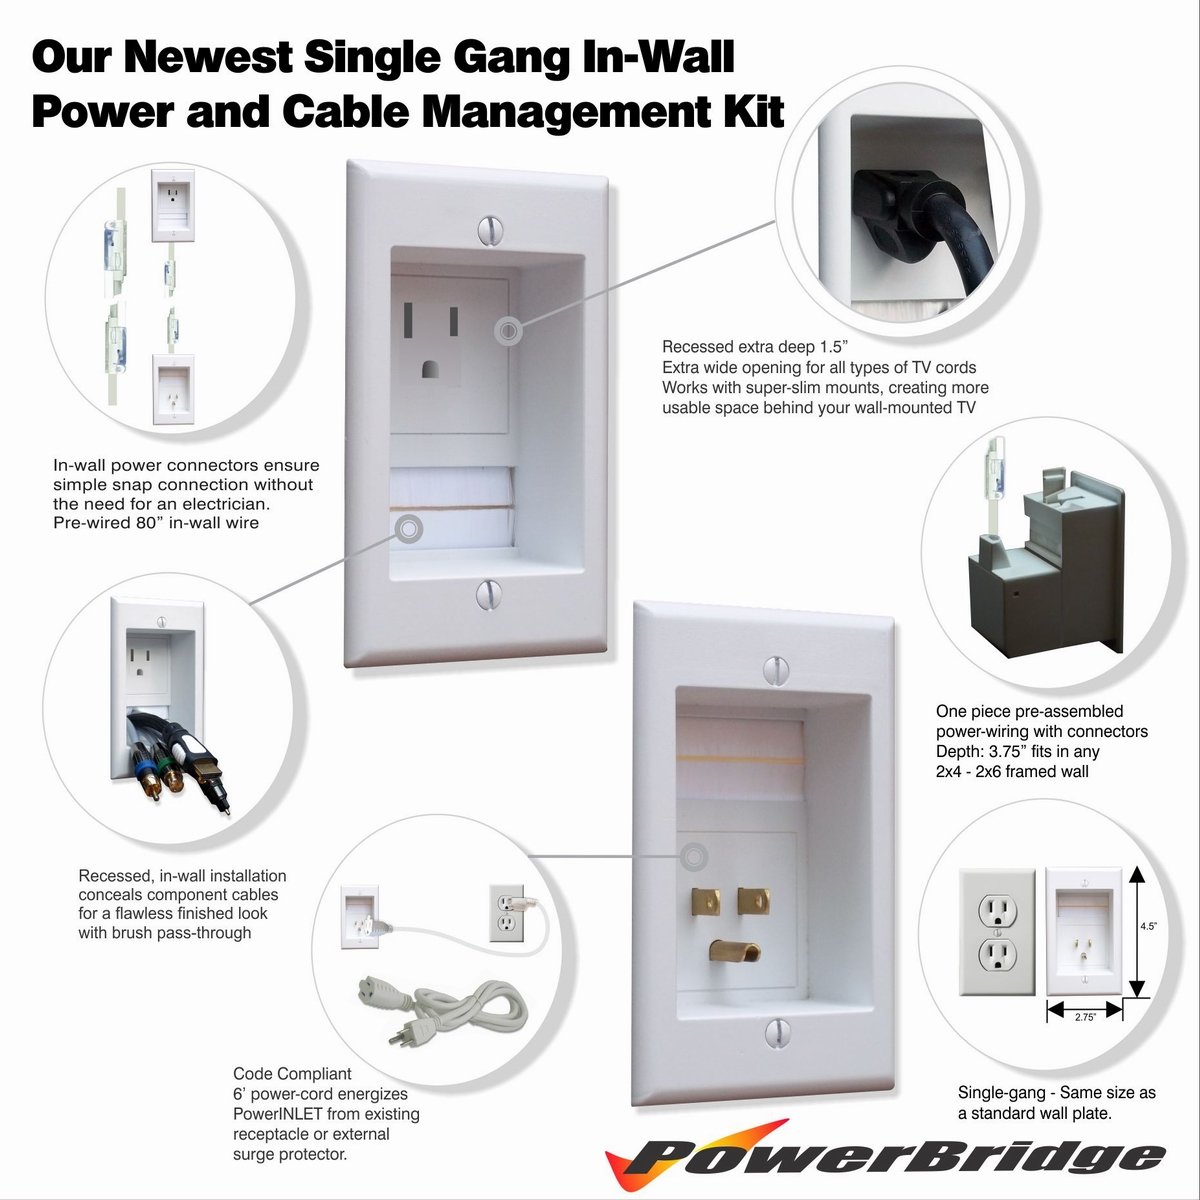 Powerbridge Total Power Control Kit Single Pre Wiring Home Cable Their Respective Cables The Below Instructional Video And Printed Instructions That Come With Product Contain Additional Detailed Information